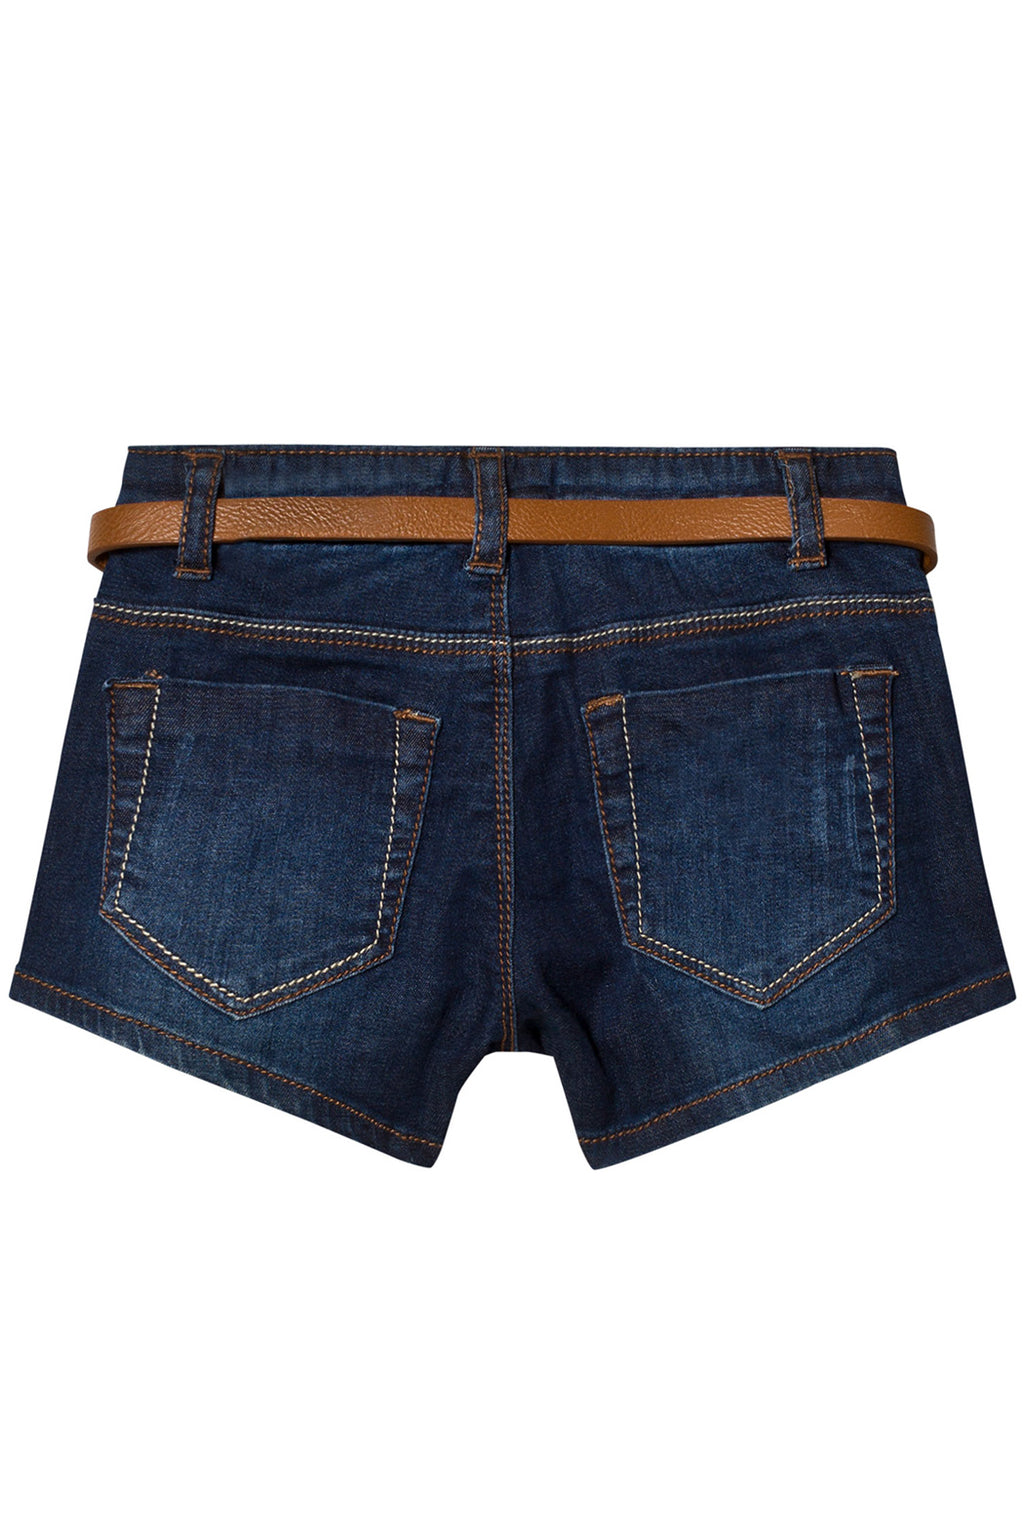 Mayoral - Dark Denim Shorts w/ Gingham Belt - kkgivingtree - K&K's Giving Tree